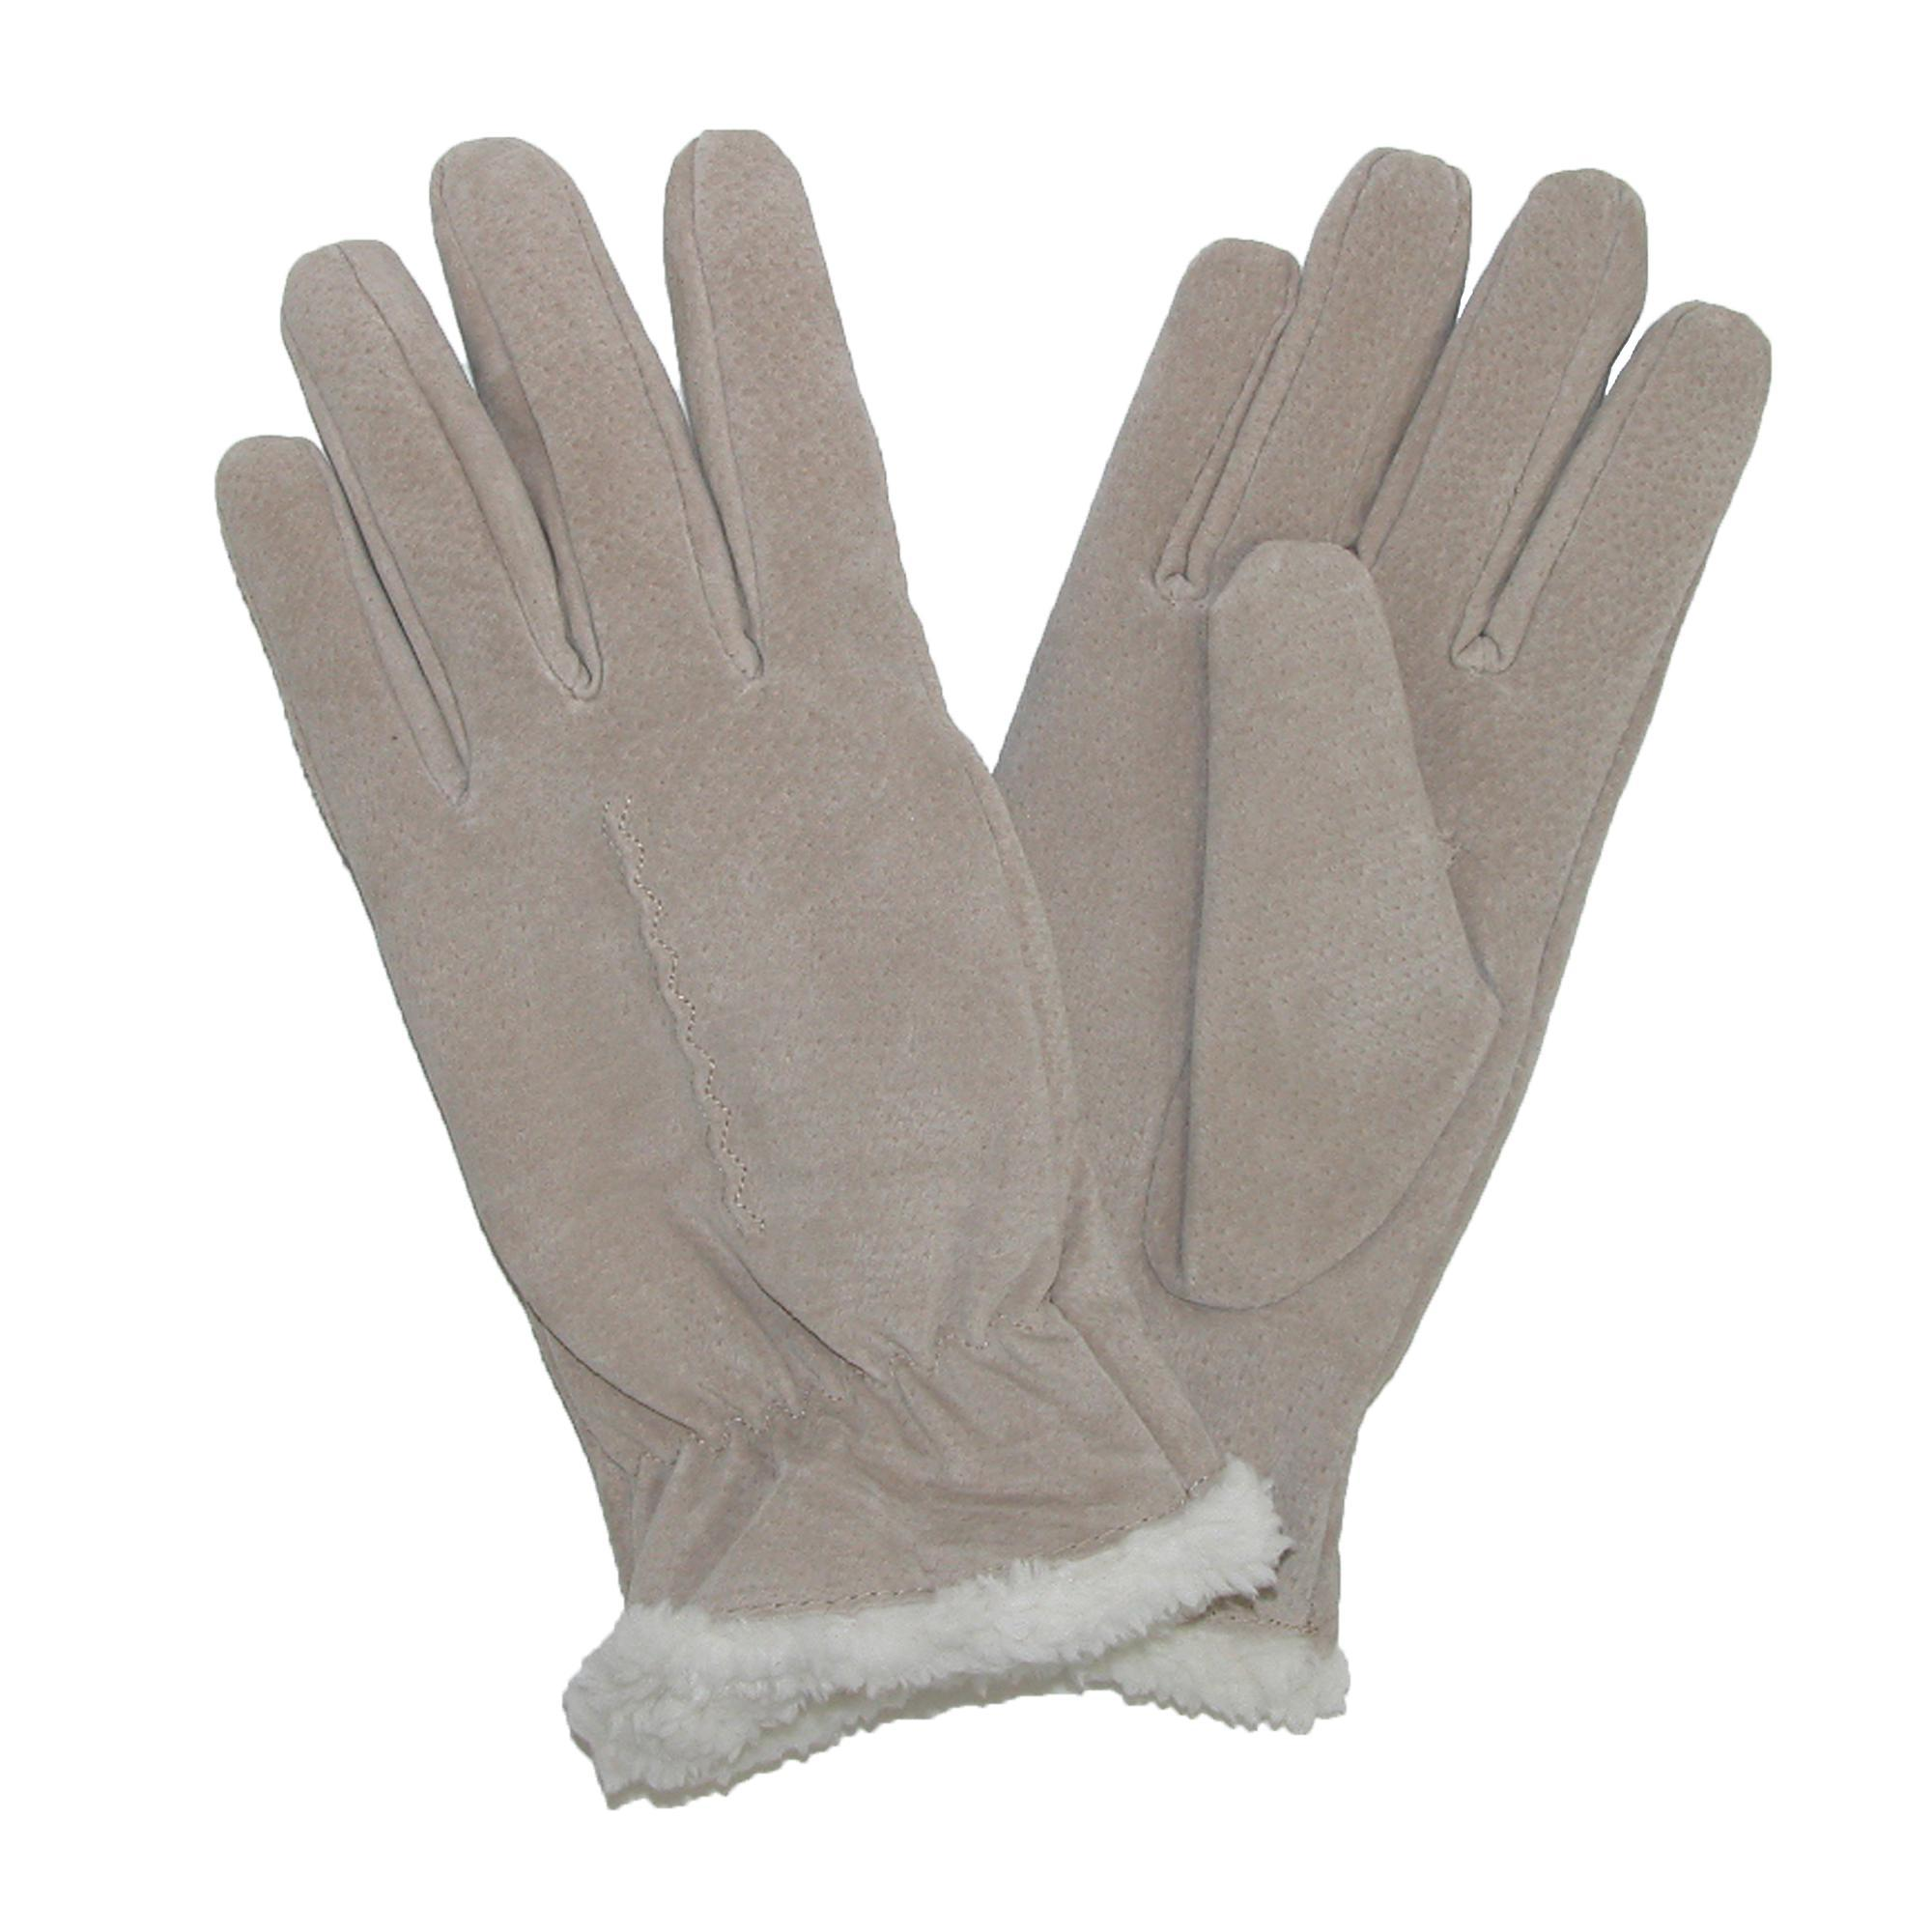 Isotoner womens leather gloves with fleece lining -  Picture 9 Of 14